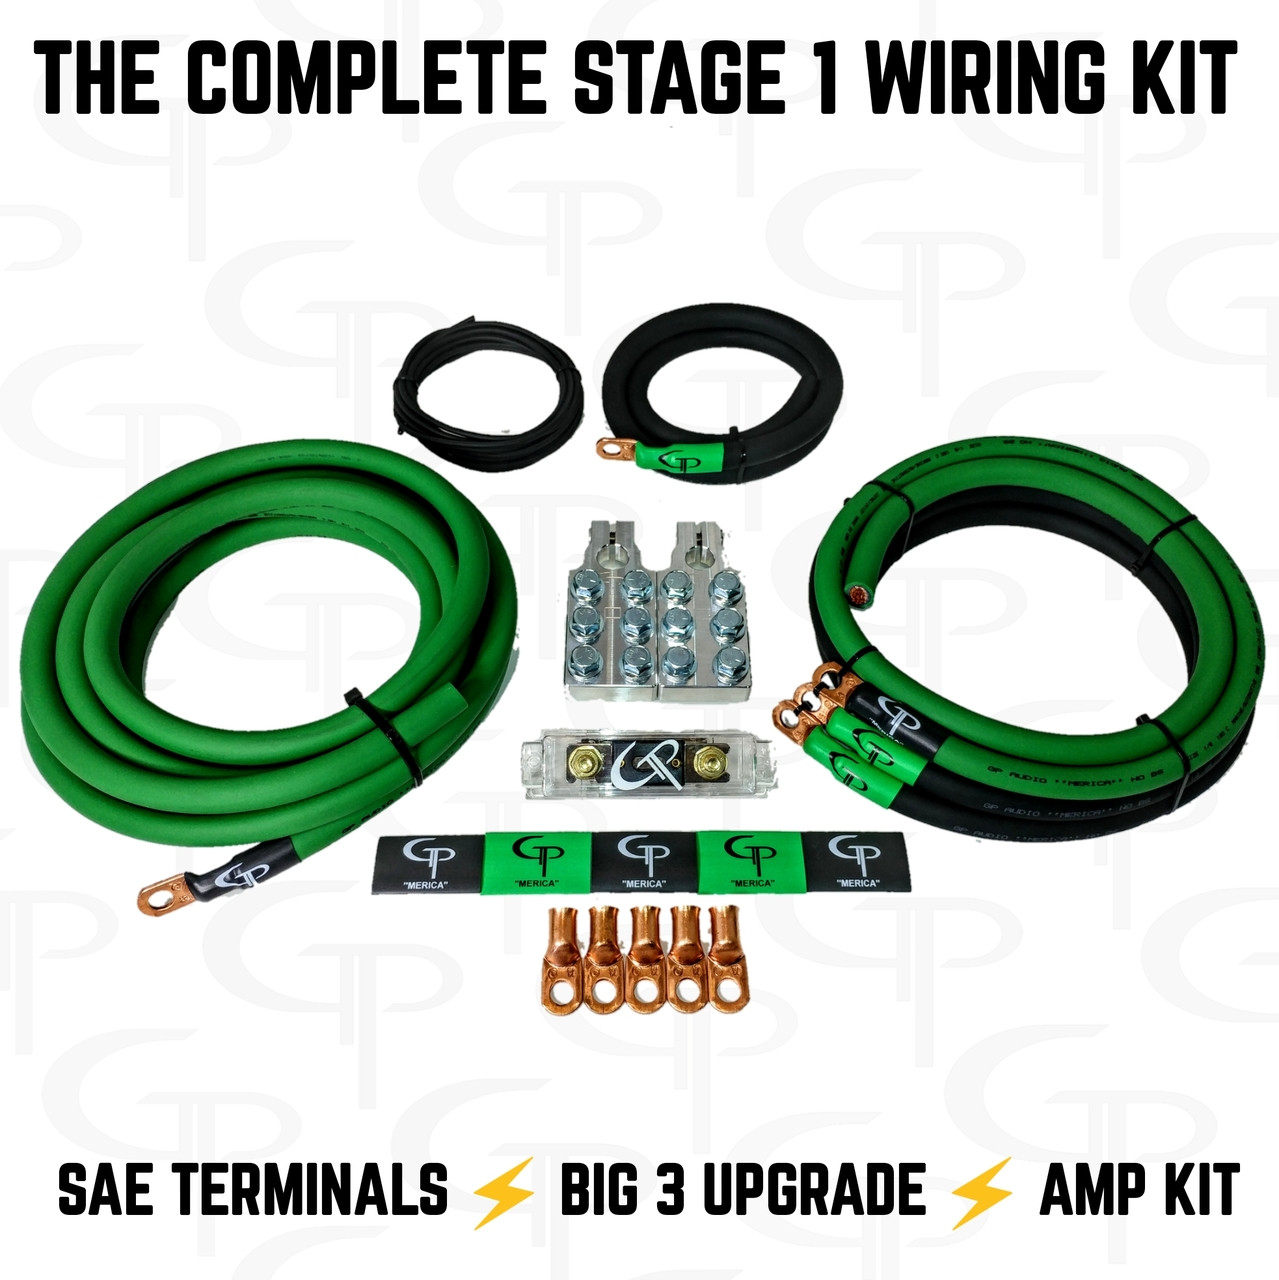 Marine Amplifier Wiring Kit 4 Gauge Free Download Diagrams The Complete 1 0 Awg Stage Gp Car Audio